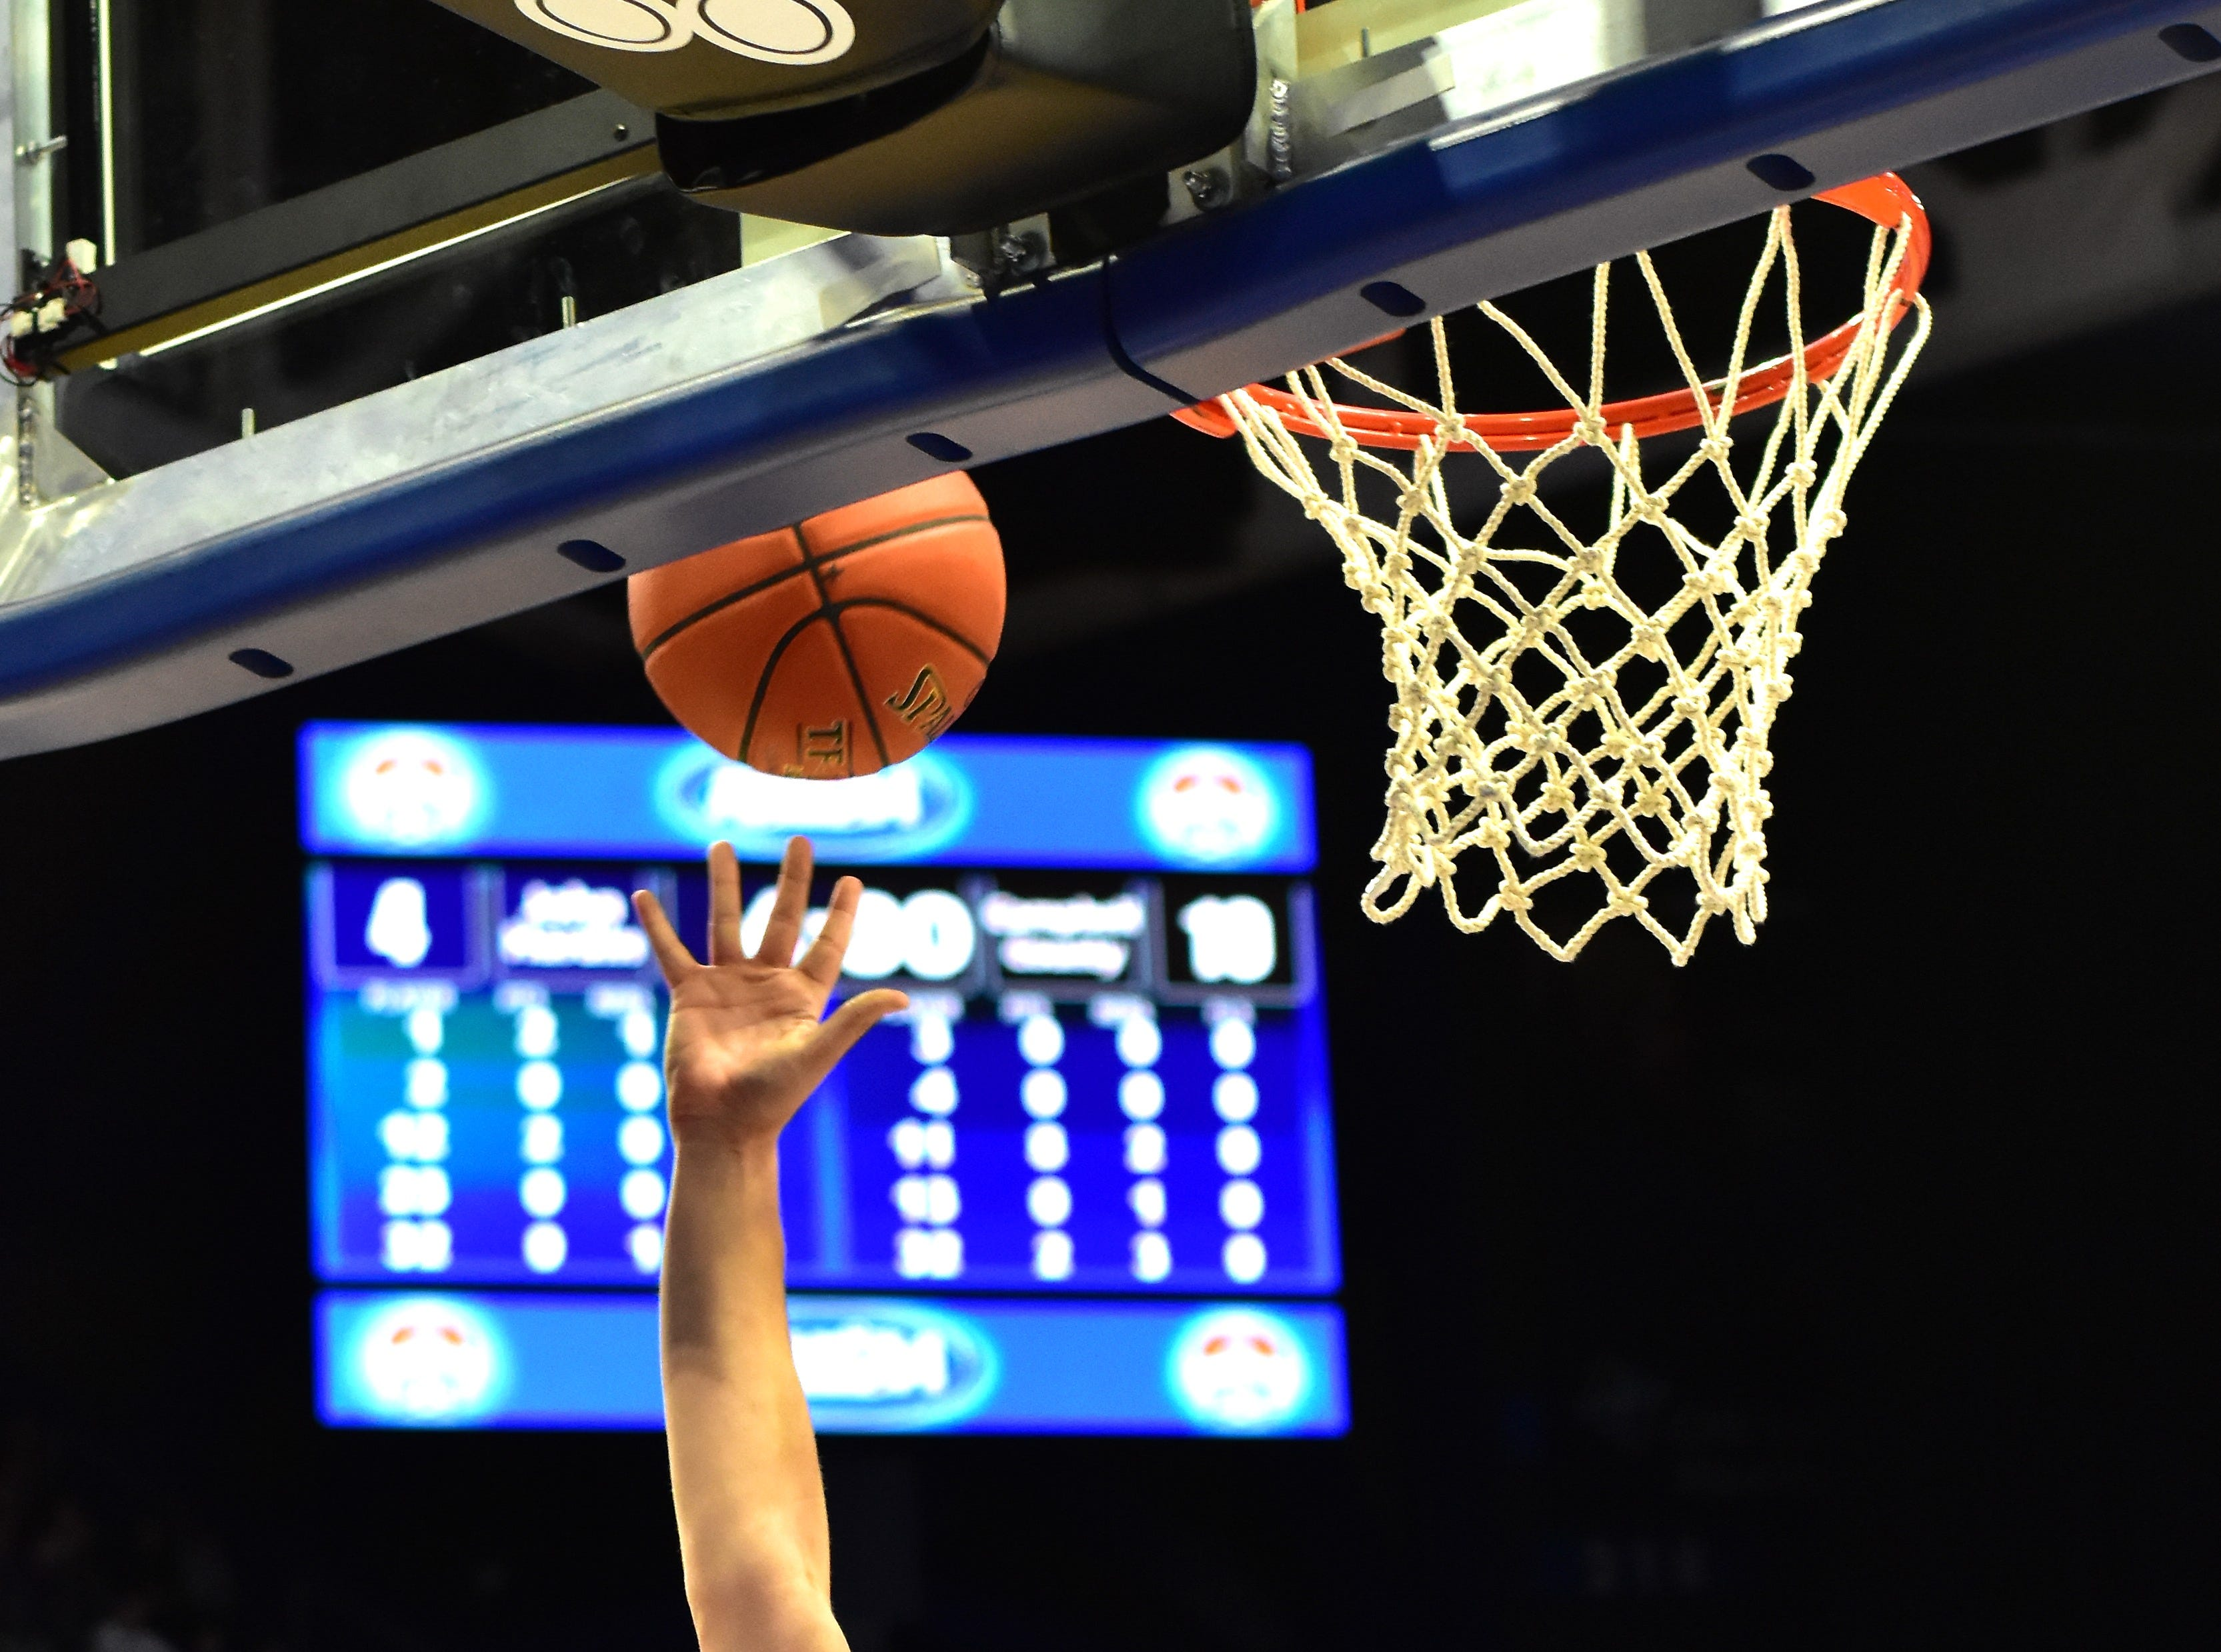 Drew Wilson (4) lays up a shot off of the back board for Campbell County at the KHSAA Sweet 16 Tournament at Rupp Arena in Lexington, KY, March 6, 2019